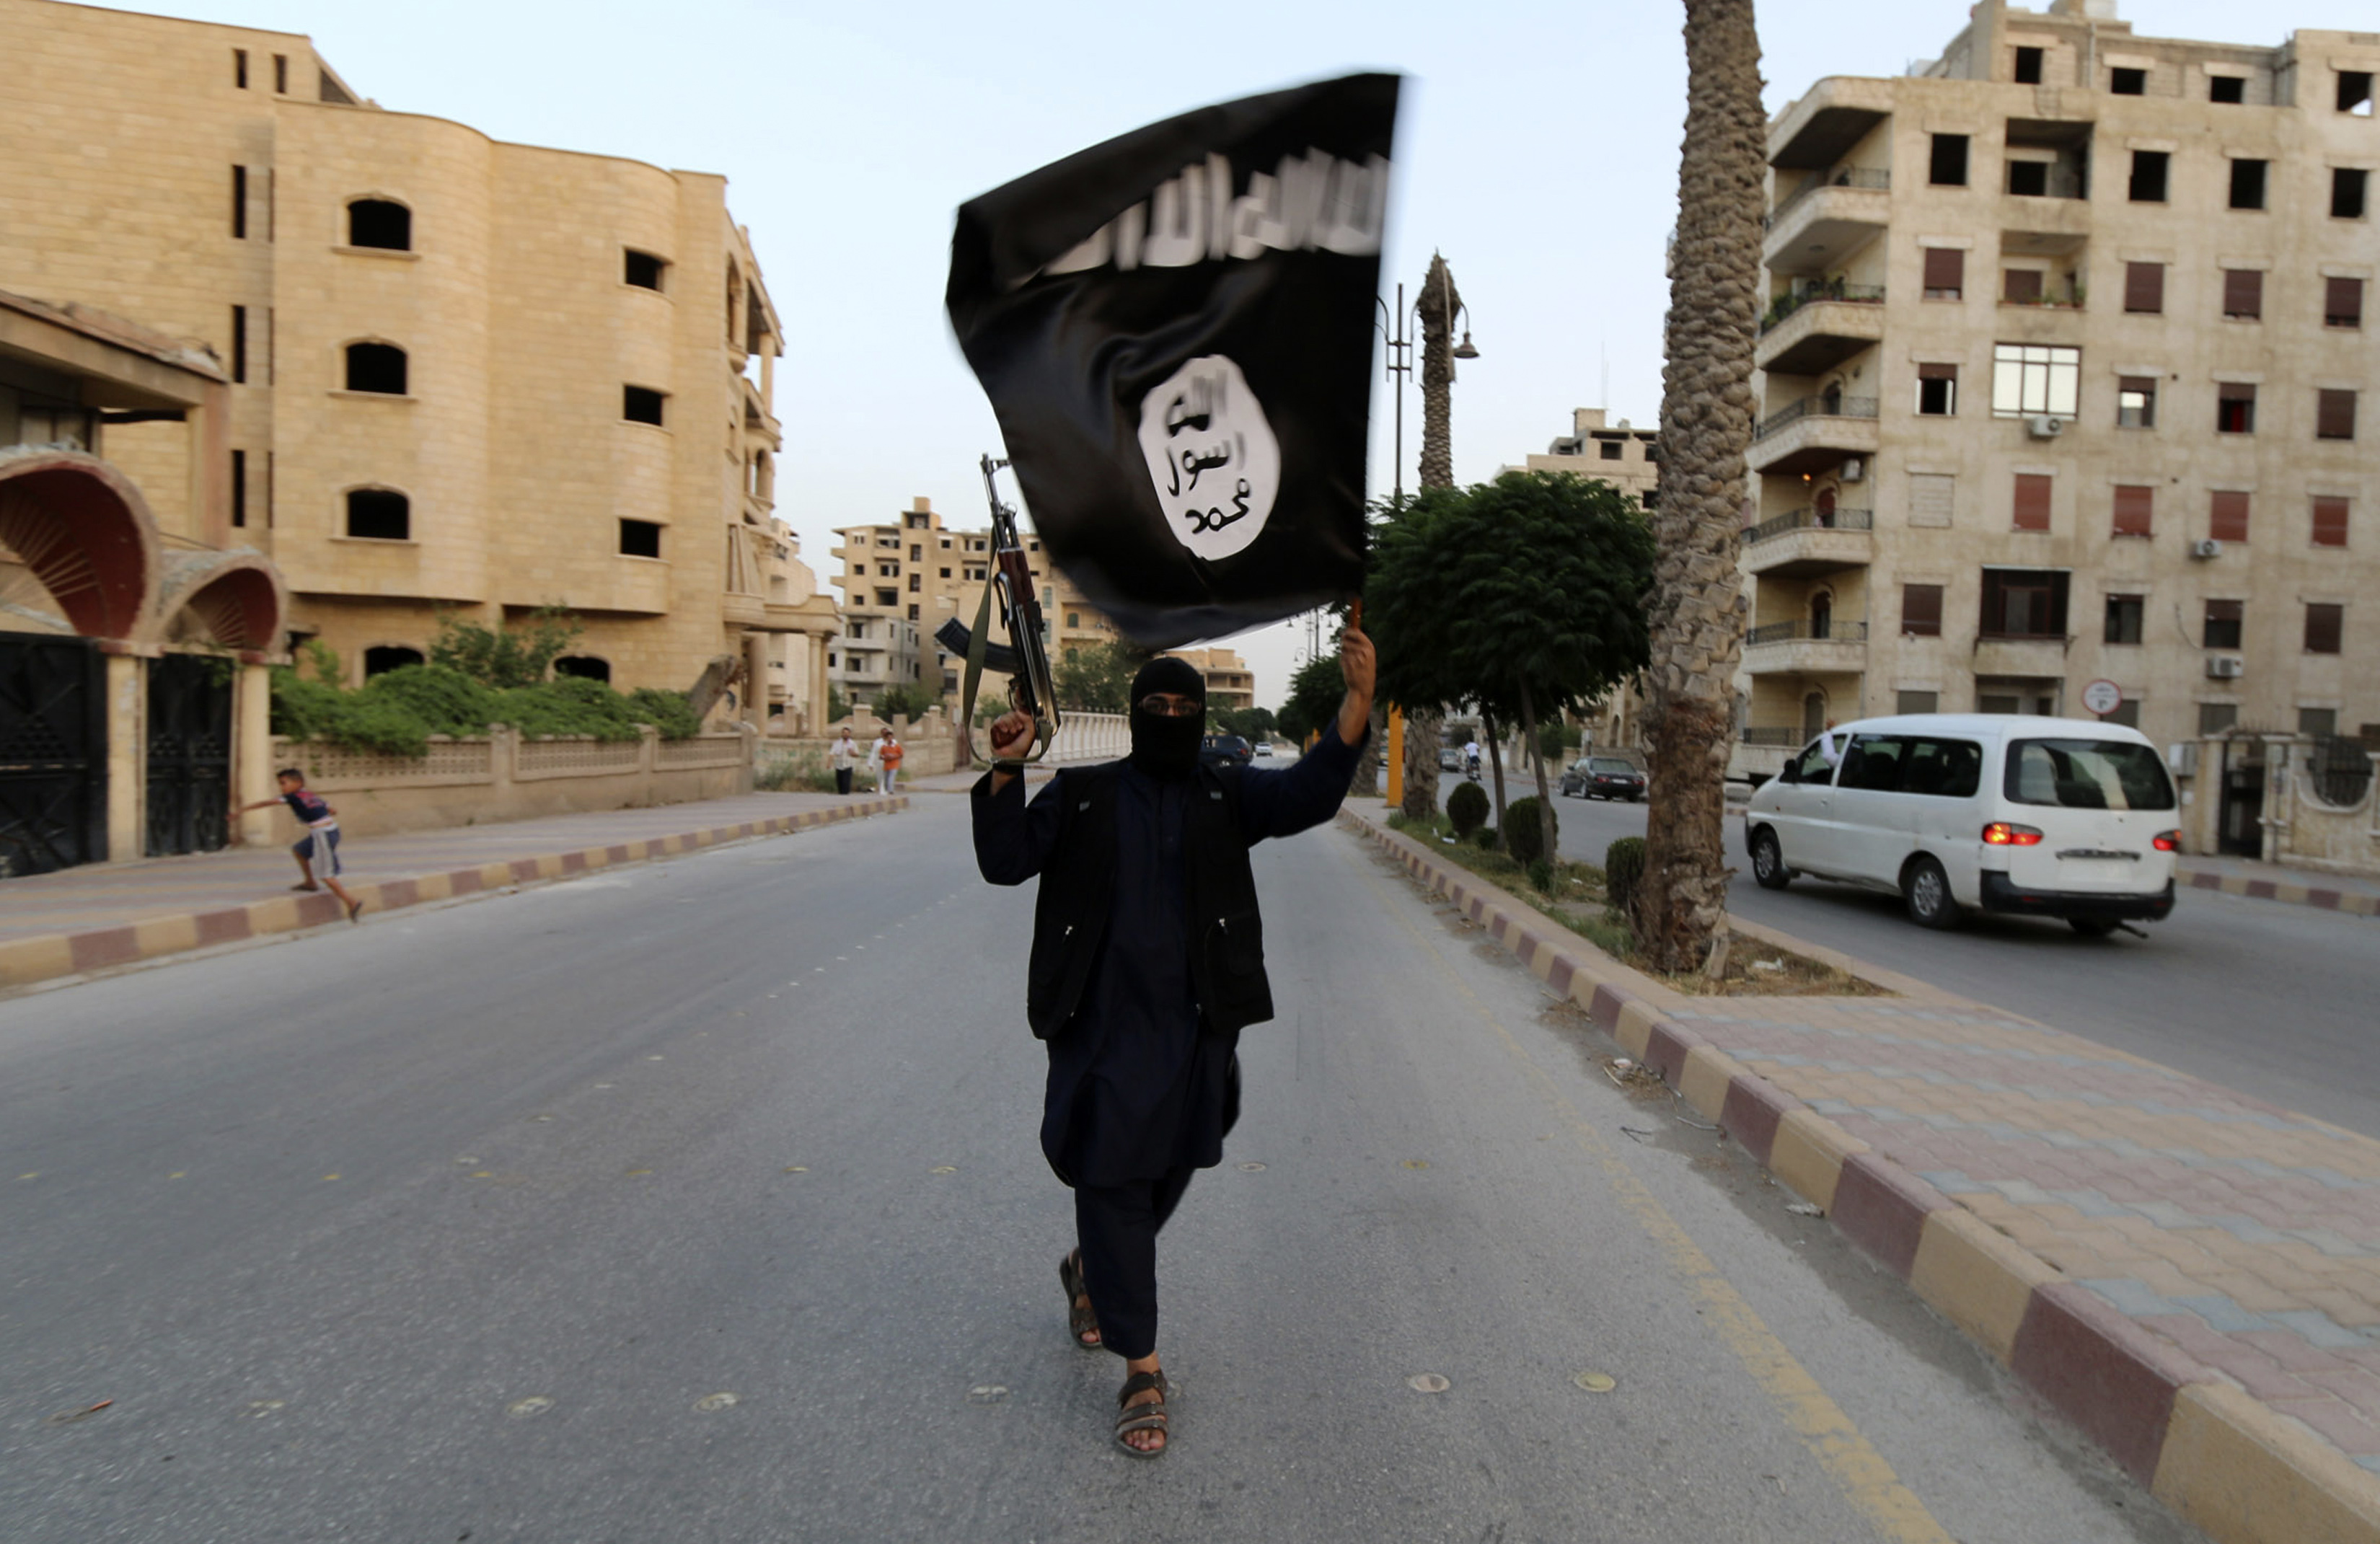 A fighter from the Islamic State in Iraq and Greater Syria (ISIS) waves a flag in Raqqa, Syria on June 29, 2014.